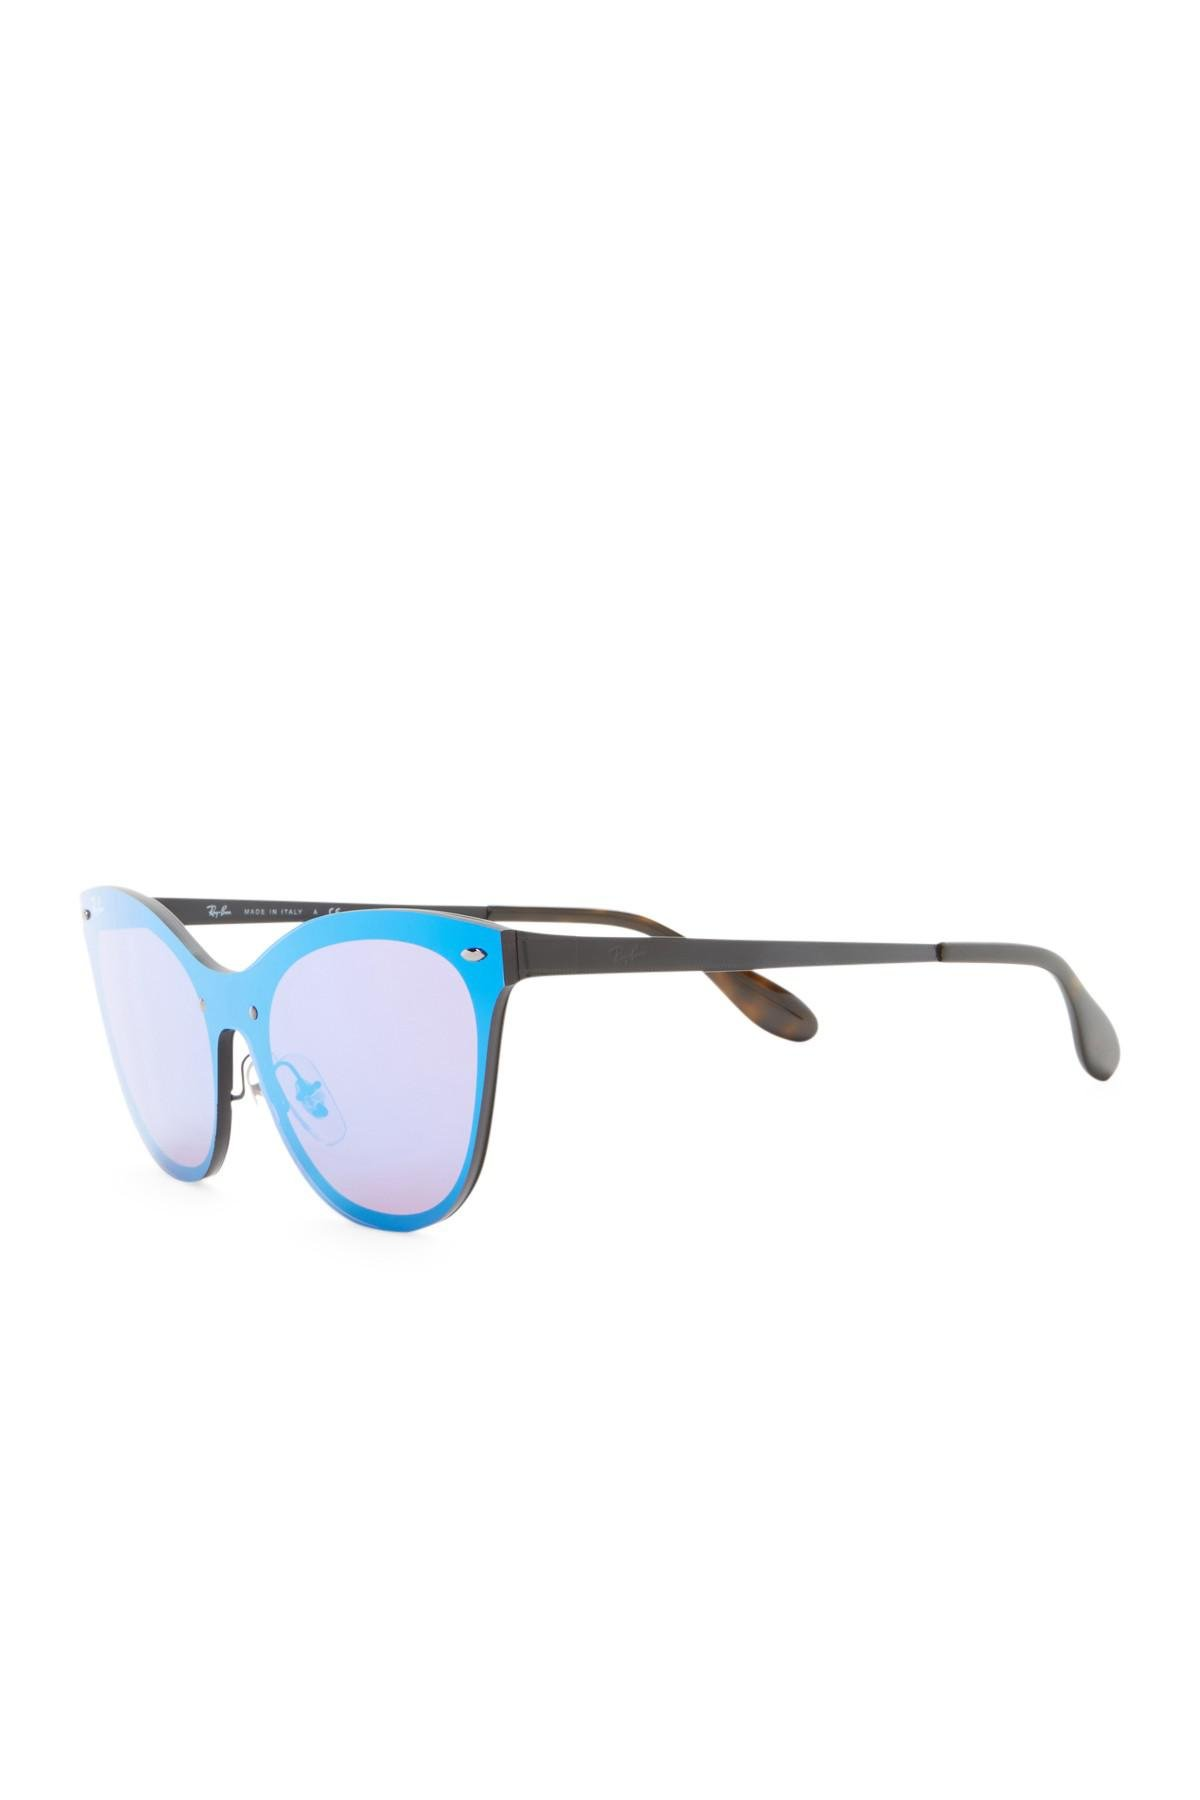 024347c9b84ab Ray-Ban - Blue 153mm Cat Eye Shield Sunglasses - Lyst. View fullscreen